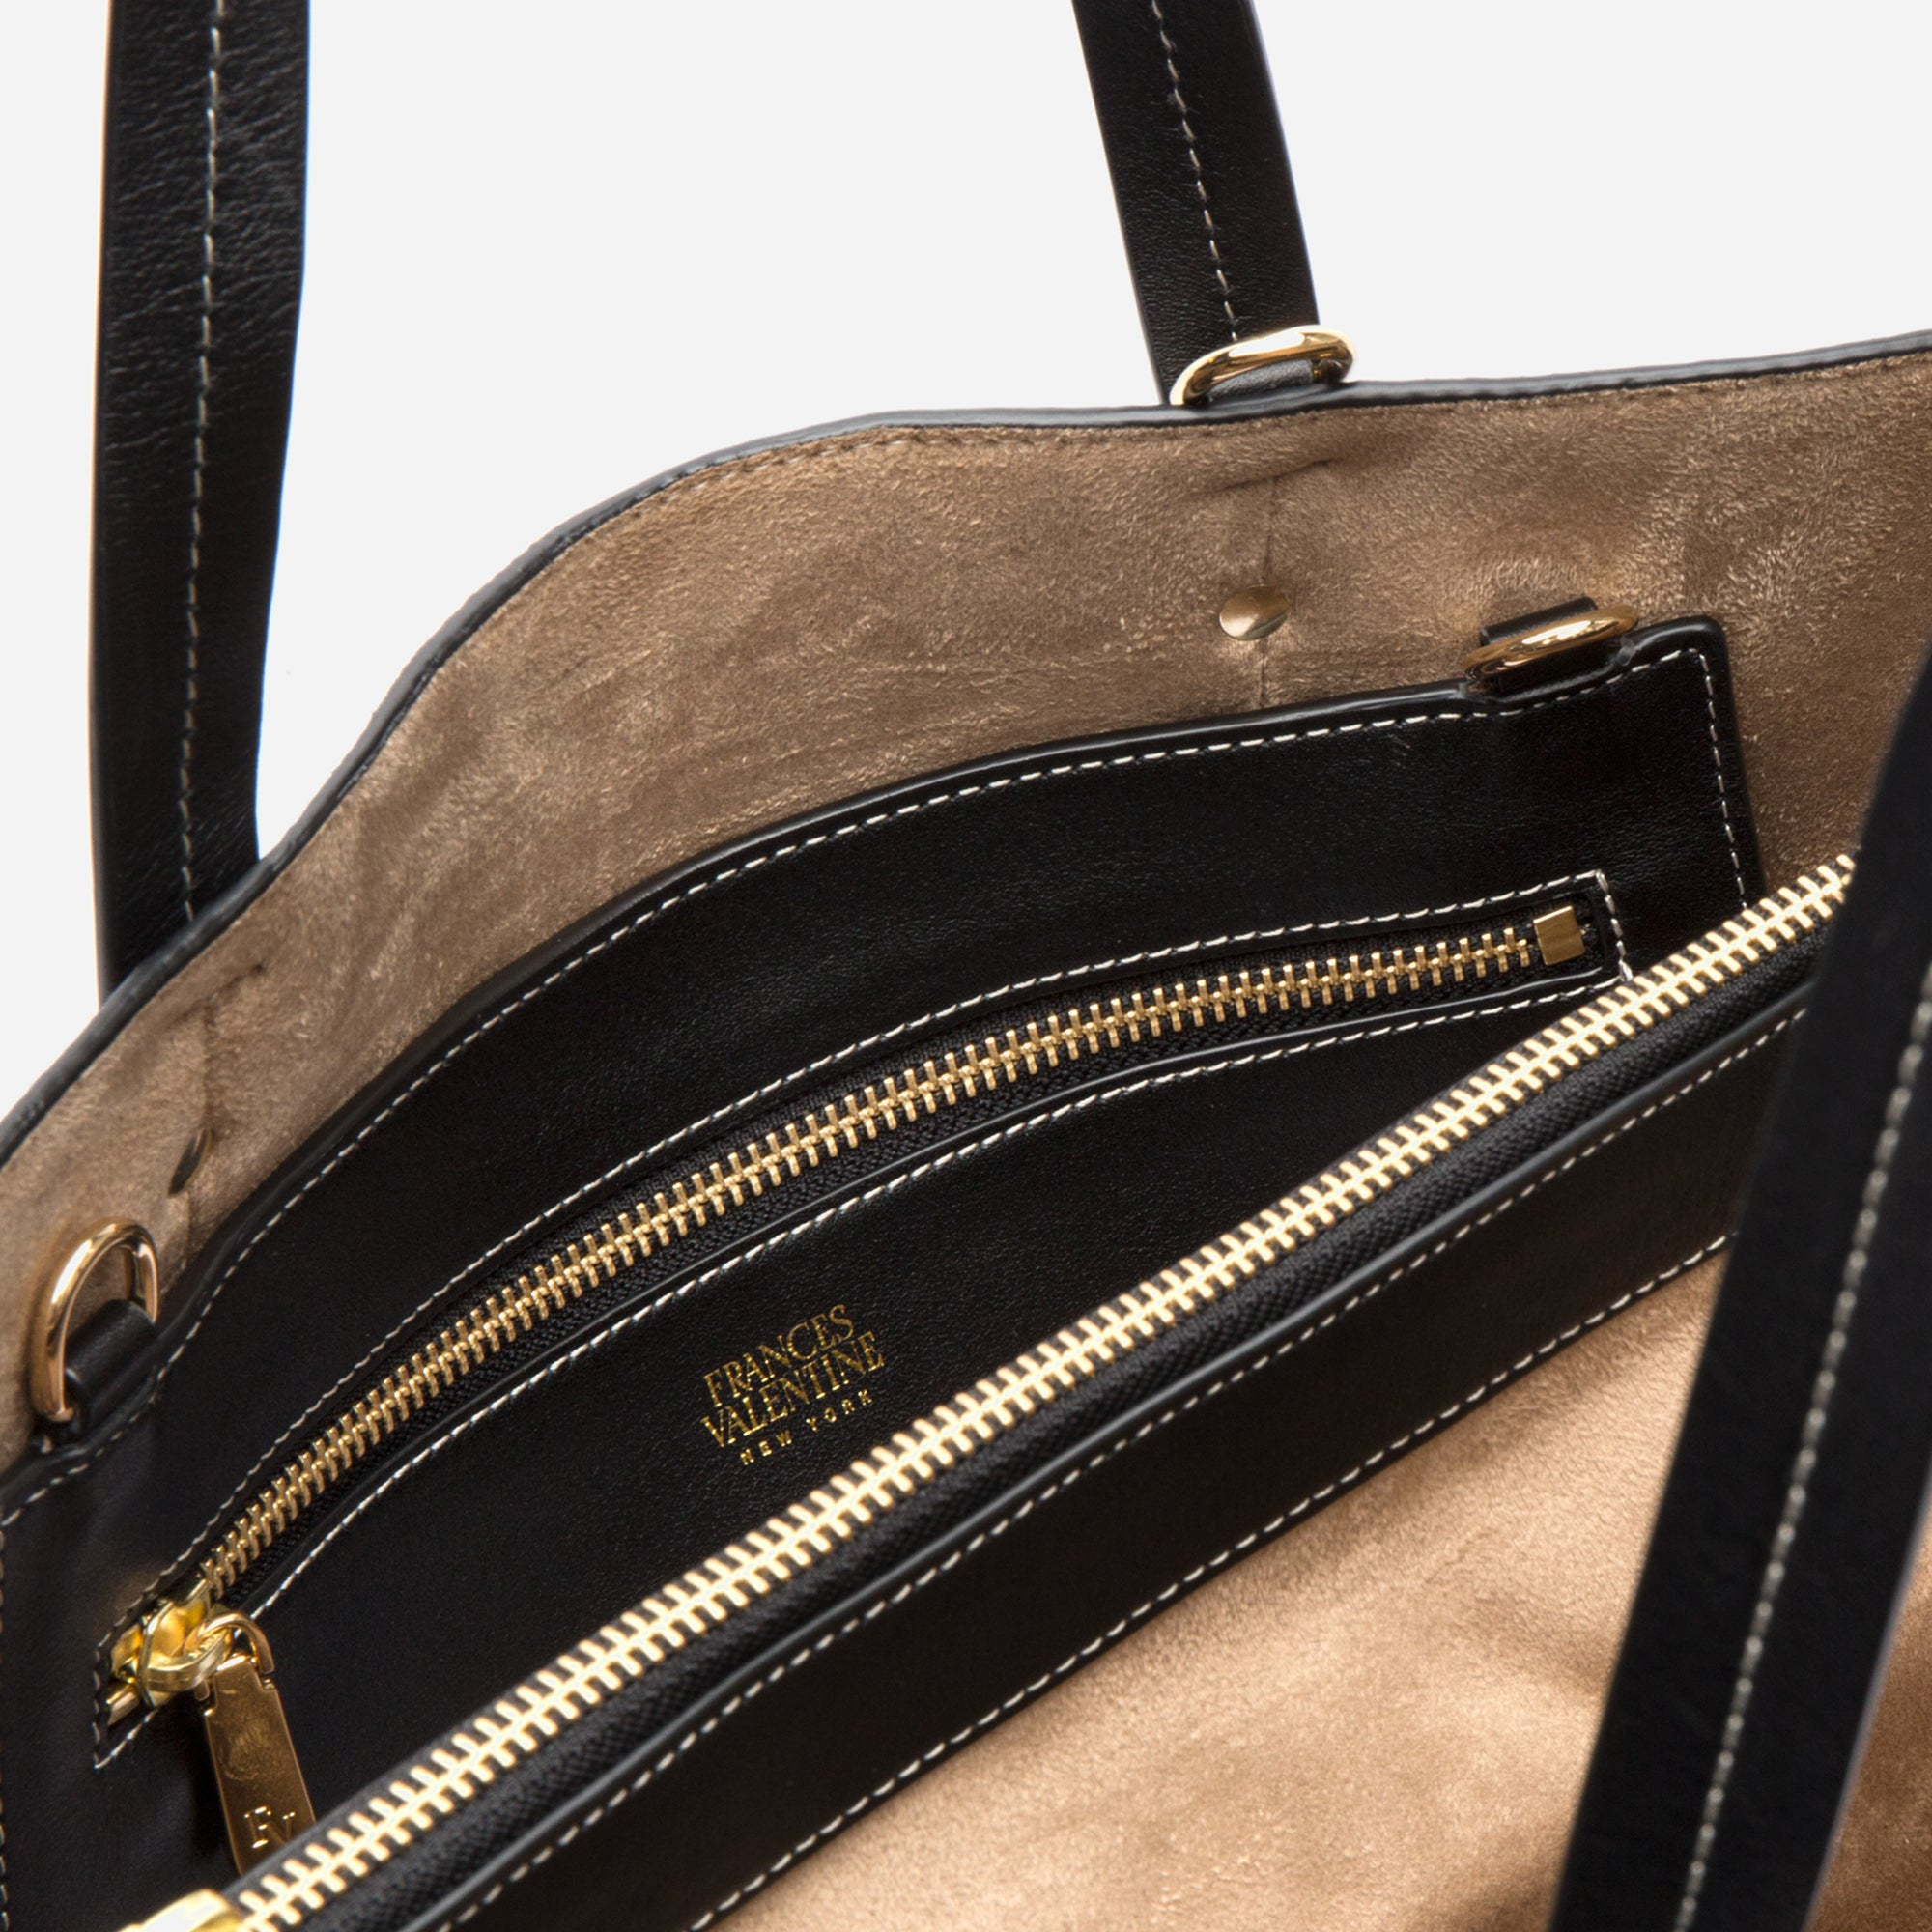 9069236d80 Carry a laptop & everyday essentials. Shop Frances. Tall Chloe Tumbled  Leather Black. Tall Chloe Tumbled Leather Black. Tall Chloe Tumbled Leather  Black